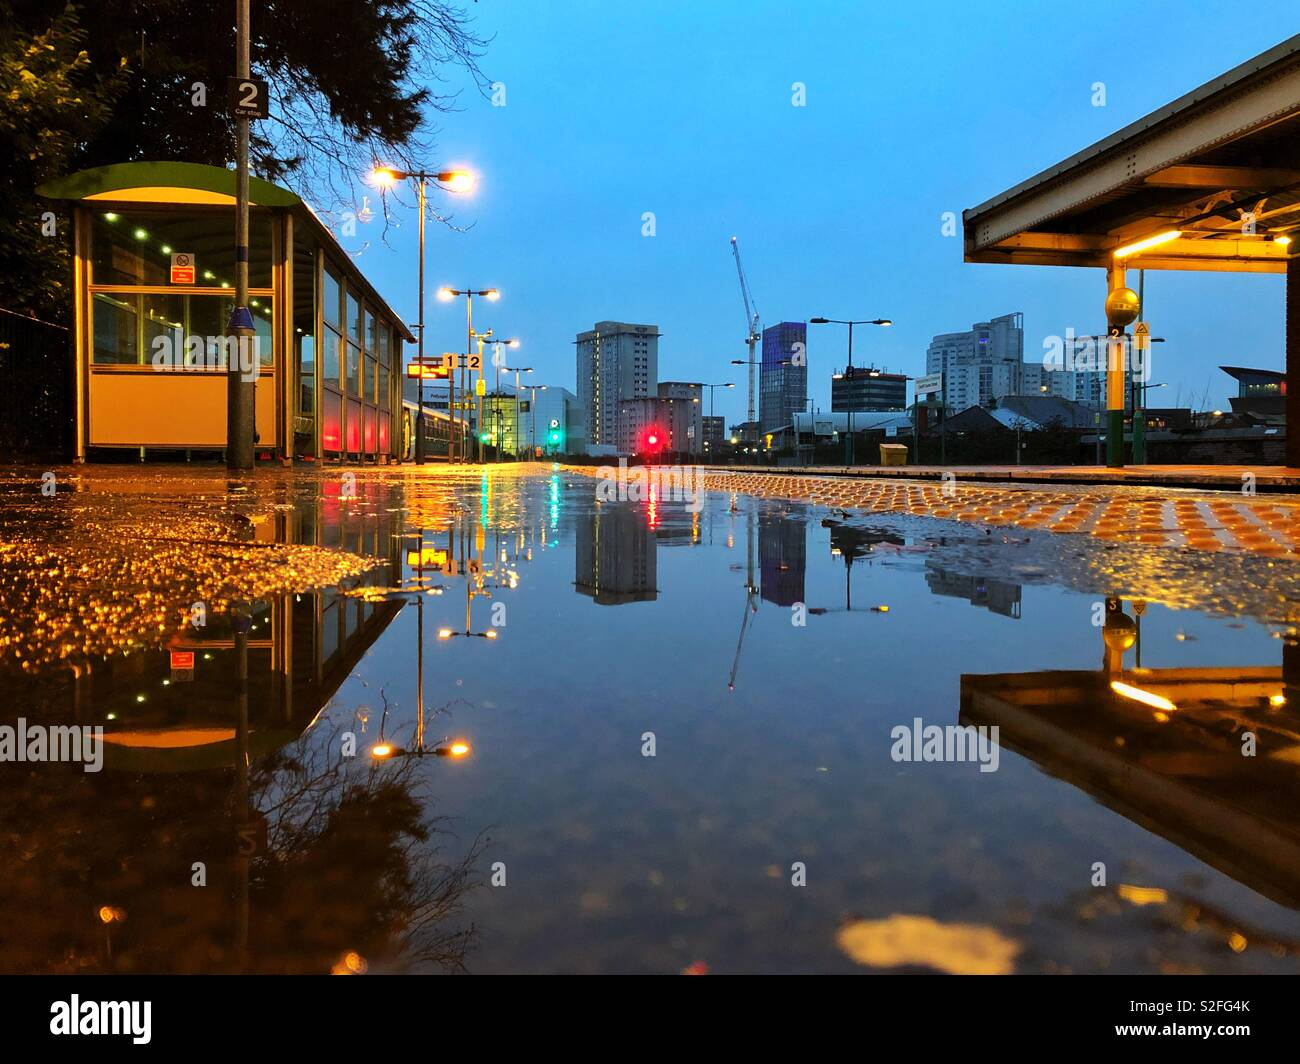 Reflections in a rain puddle on a train platform, Cardiff. - Stock Image